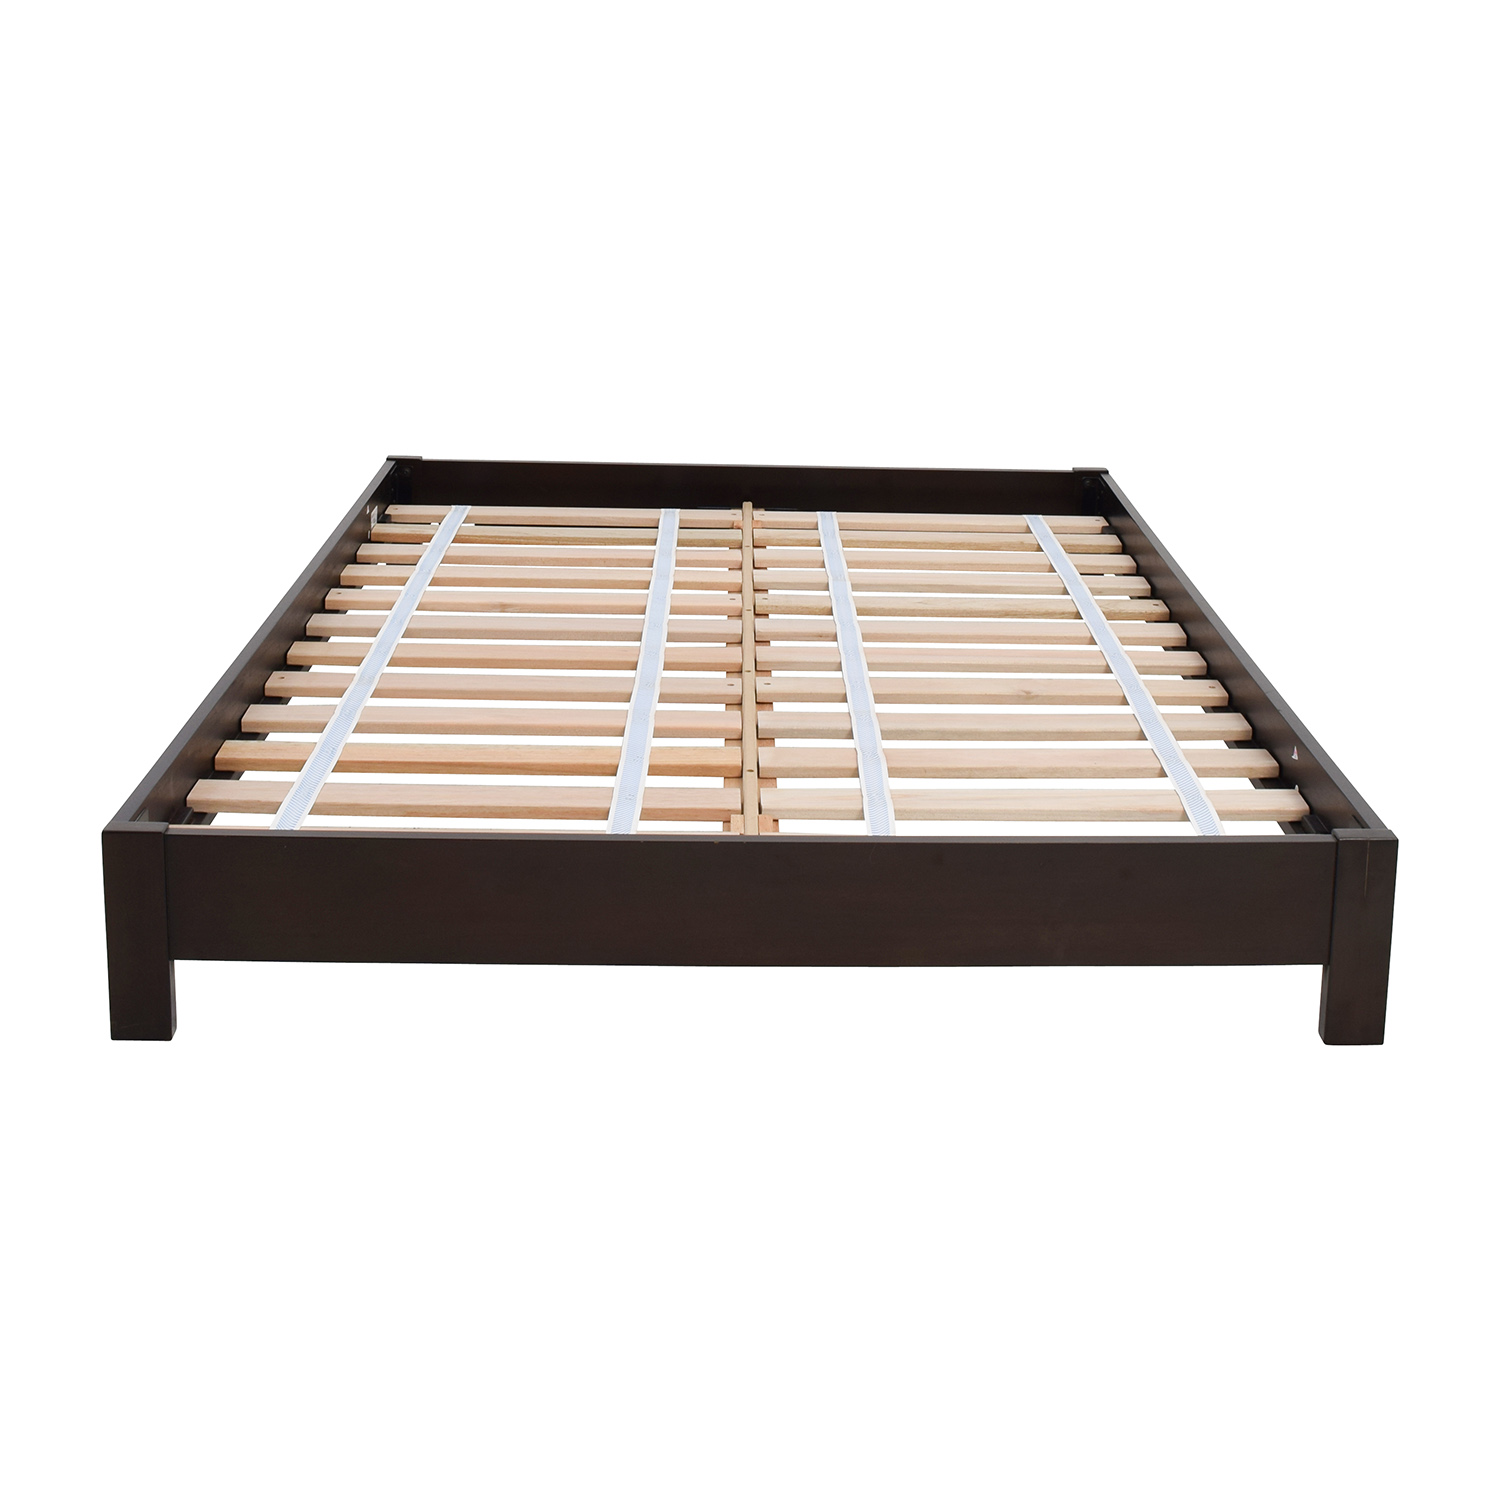 44% OFF - West Elm West Elm Simple Low Full Size Platform Bed Frame / Beds